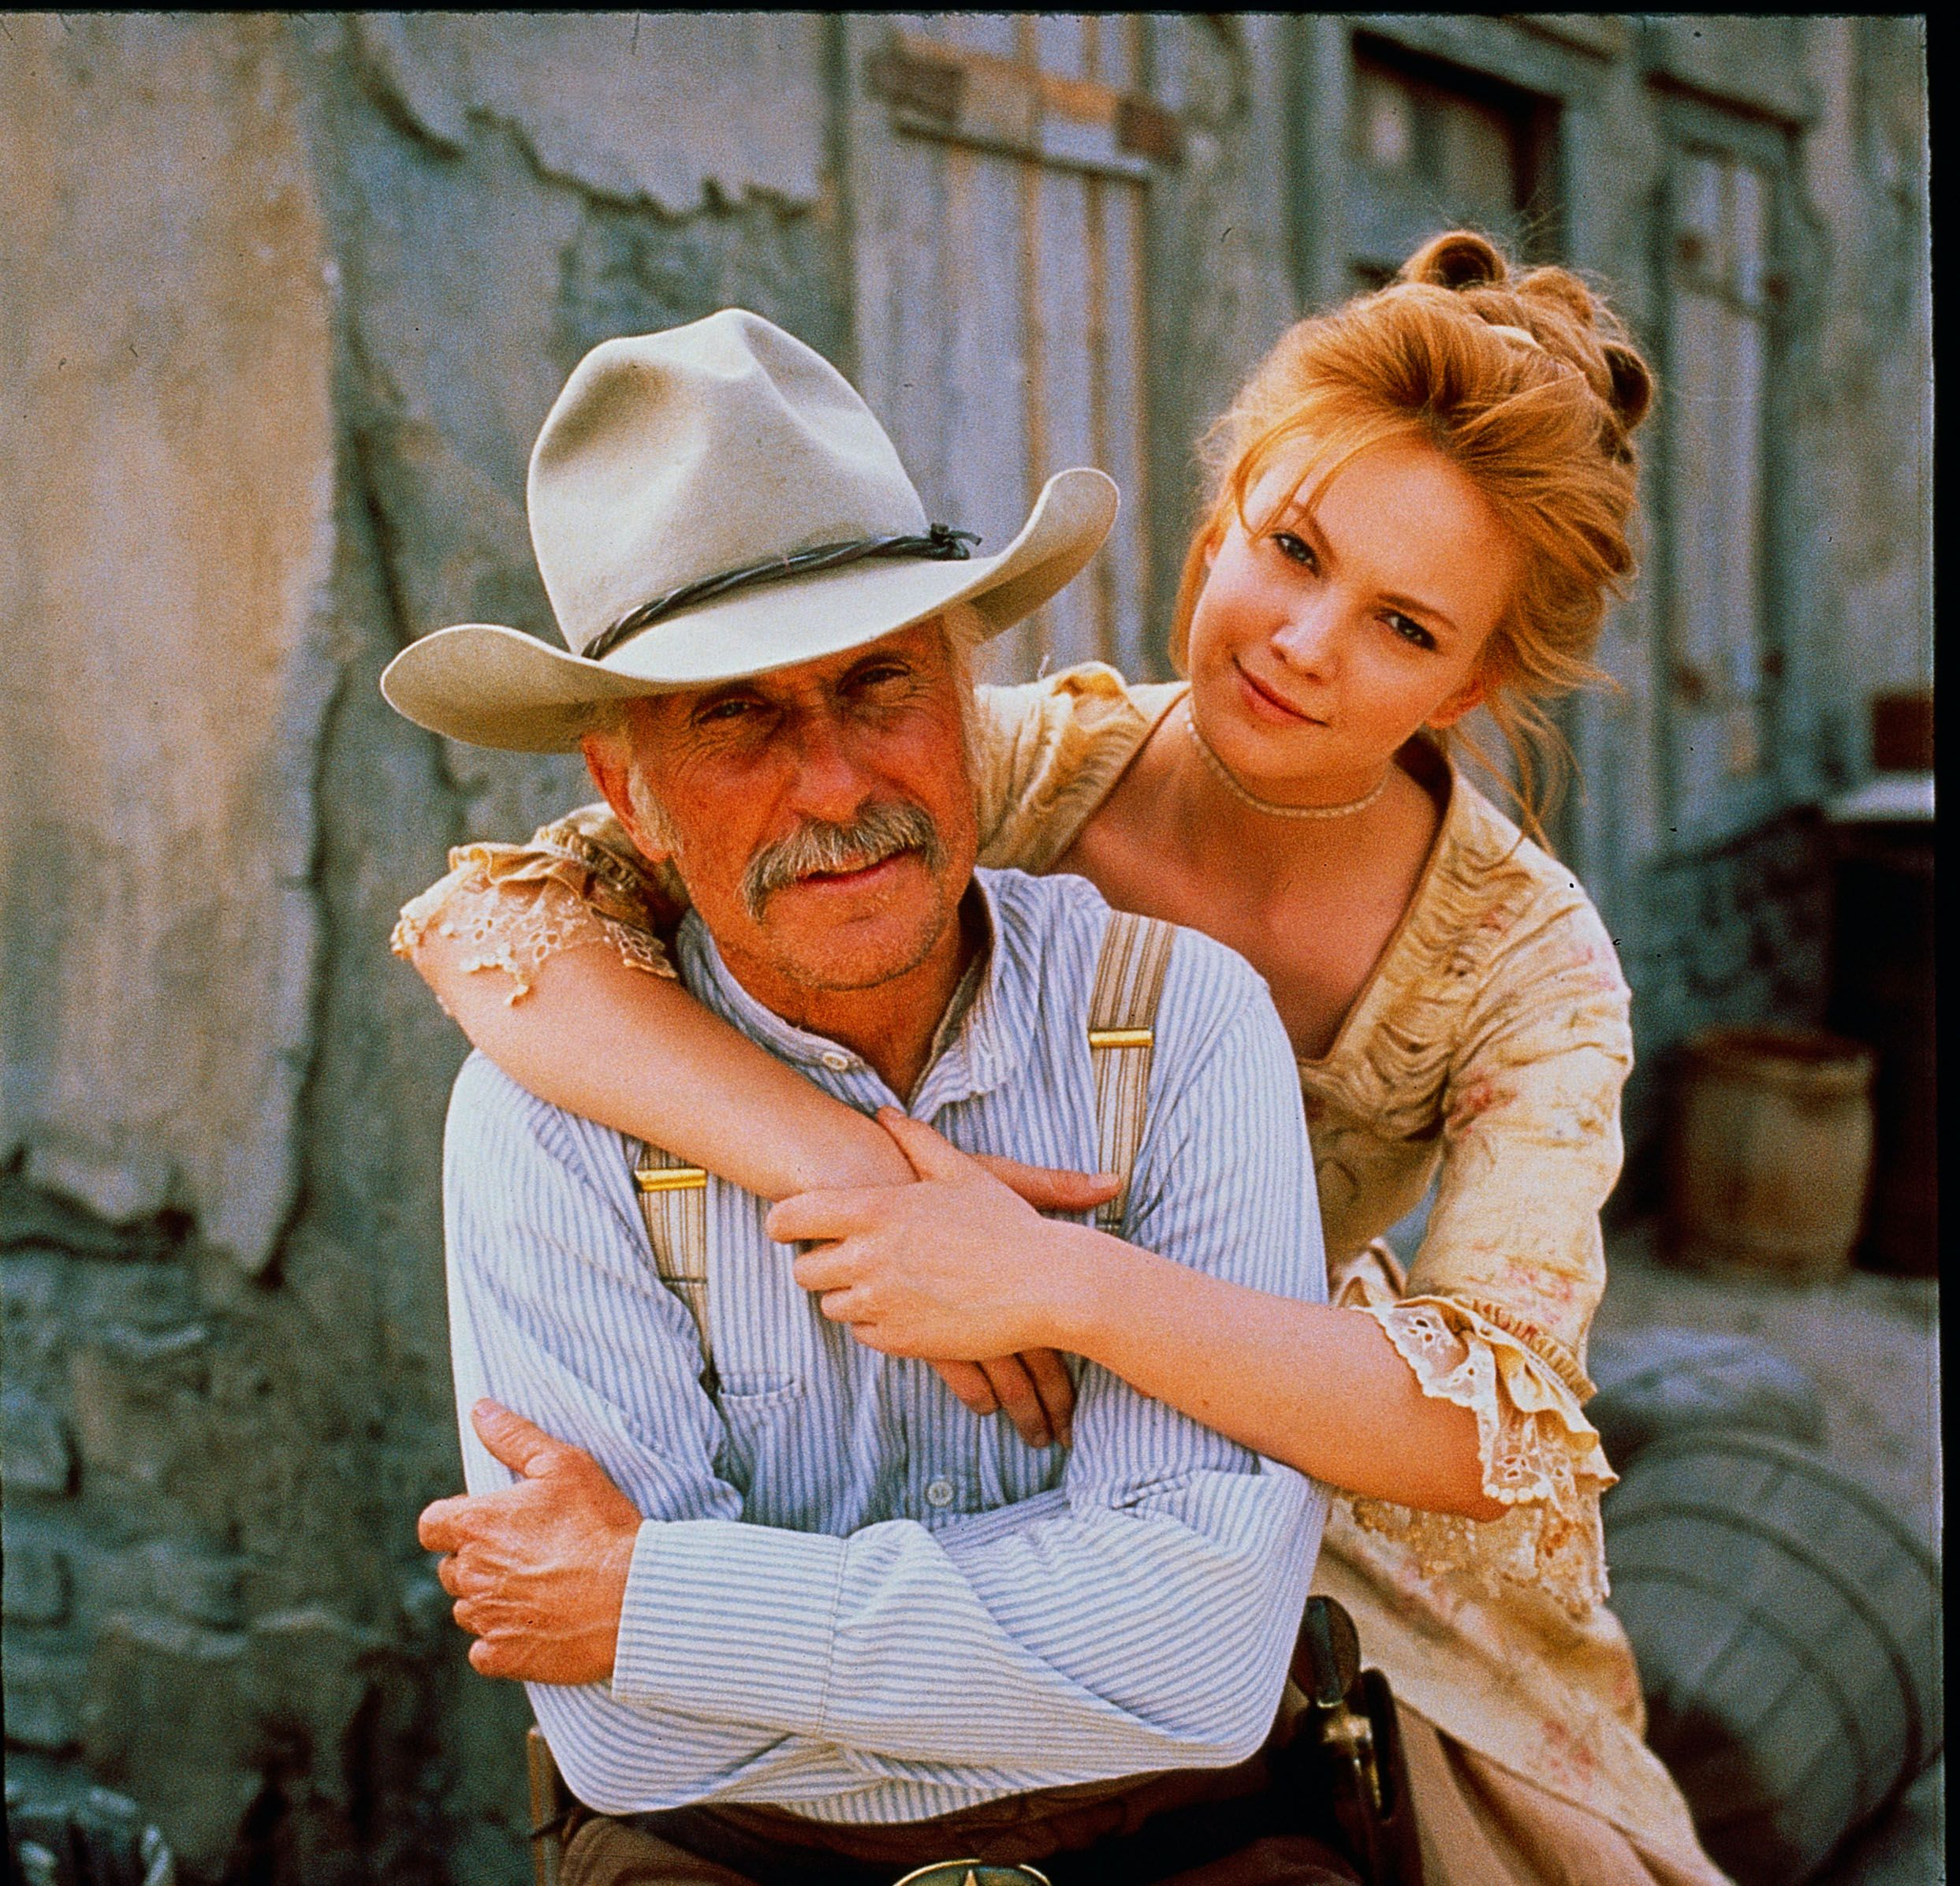 Robert Duvall and Diane Lane star in LONESOME DOVE, streaming now on Hulu.